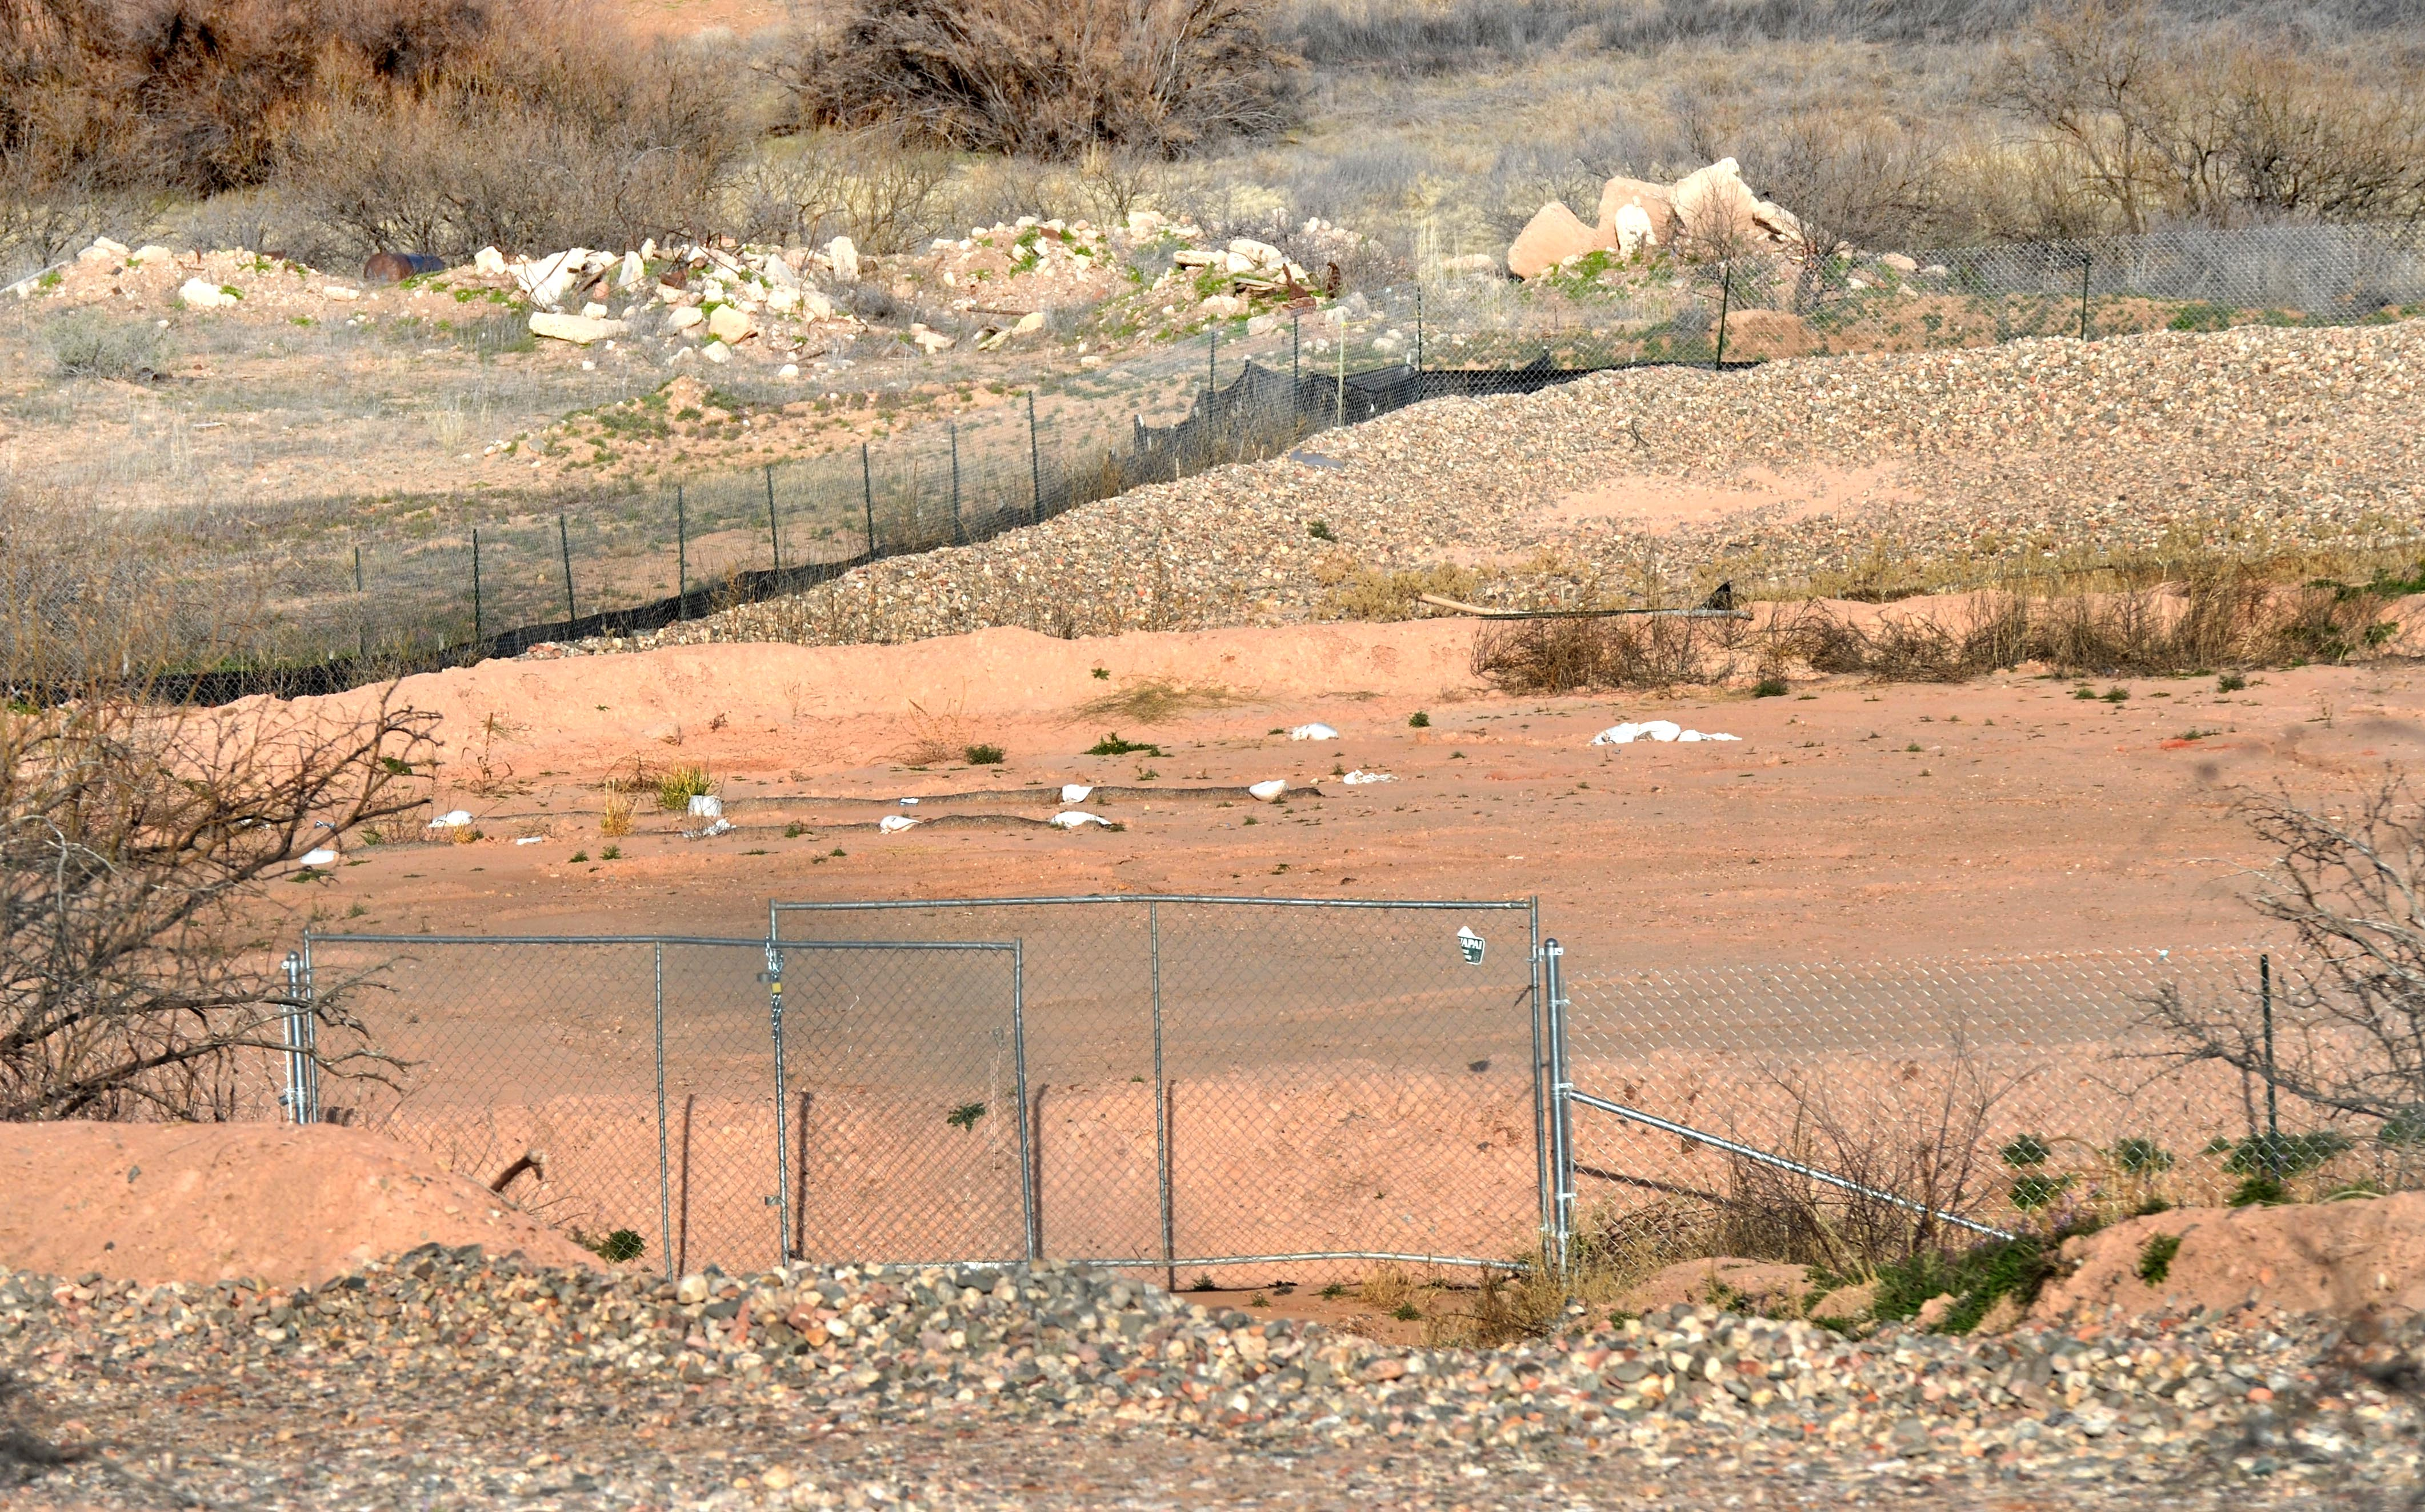 Clarkdale soil cleanup may restart this summer